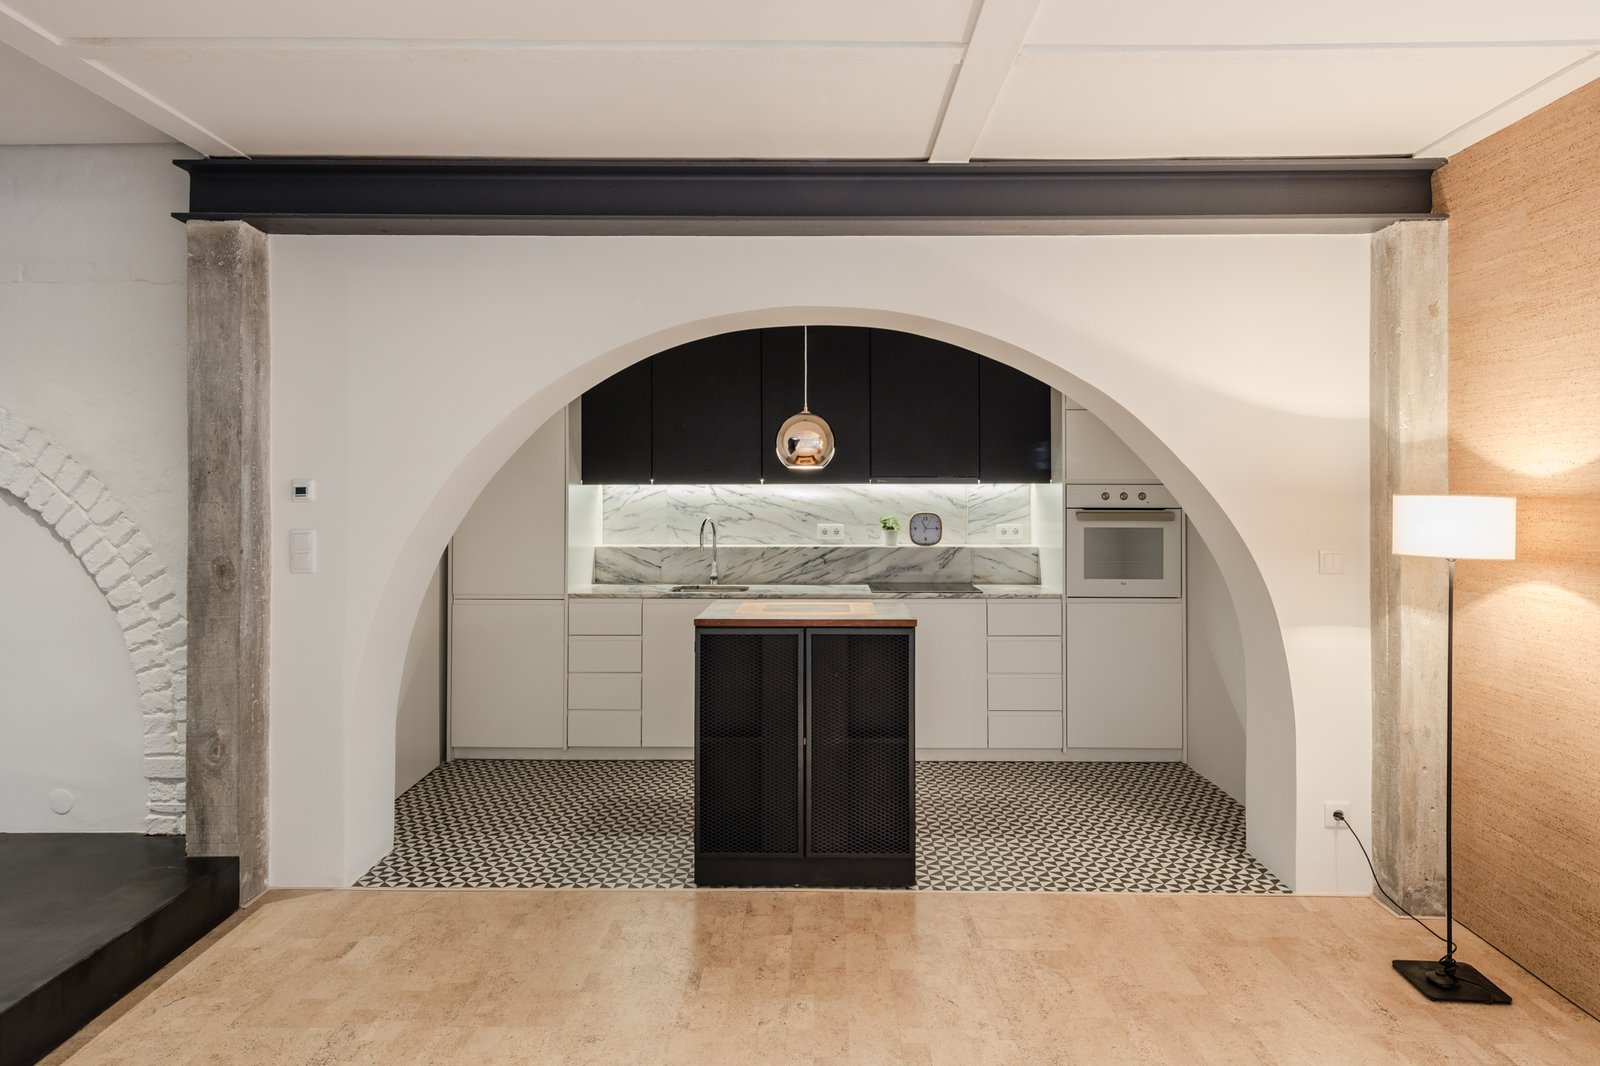 Tagged: Kitchen, Marble Counter, White Cabinet, Ceramic Tile Floor, Wall Oven, Undermount Sink, Marble Backsplashe, and Pendant Lighting.  Rua Maria Loft by KEMA studio